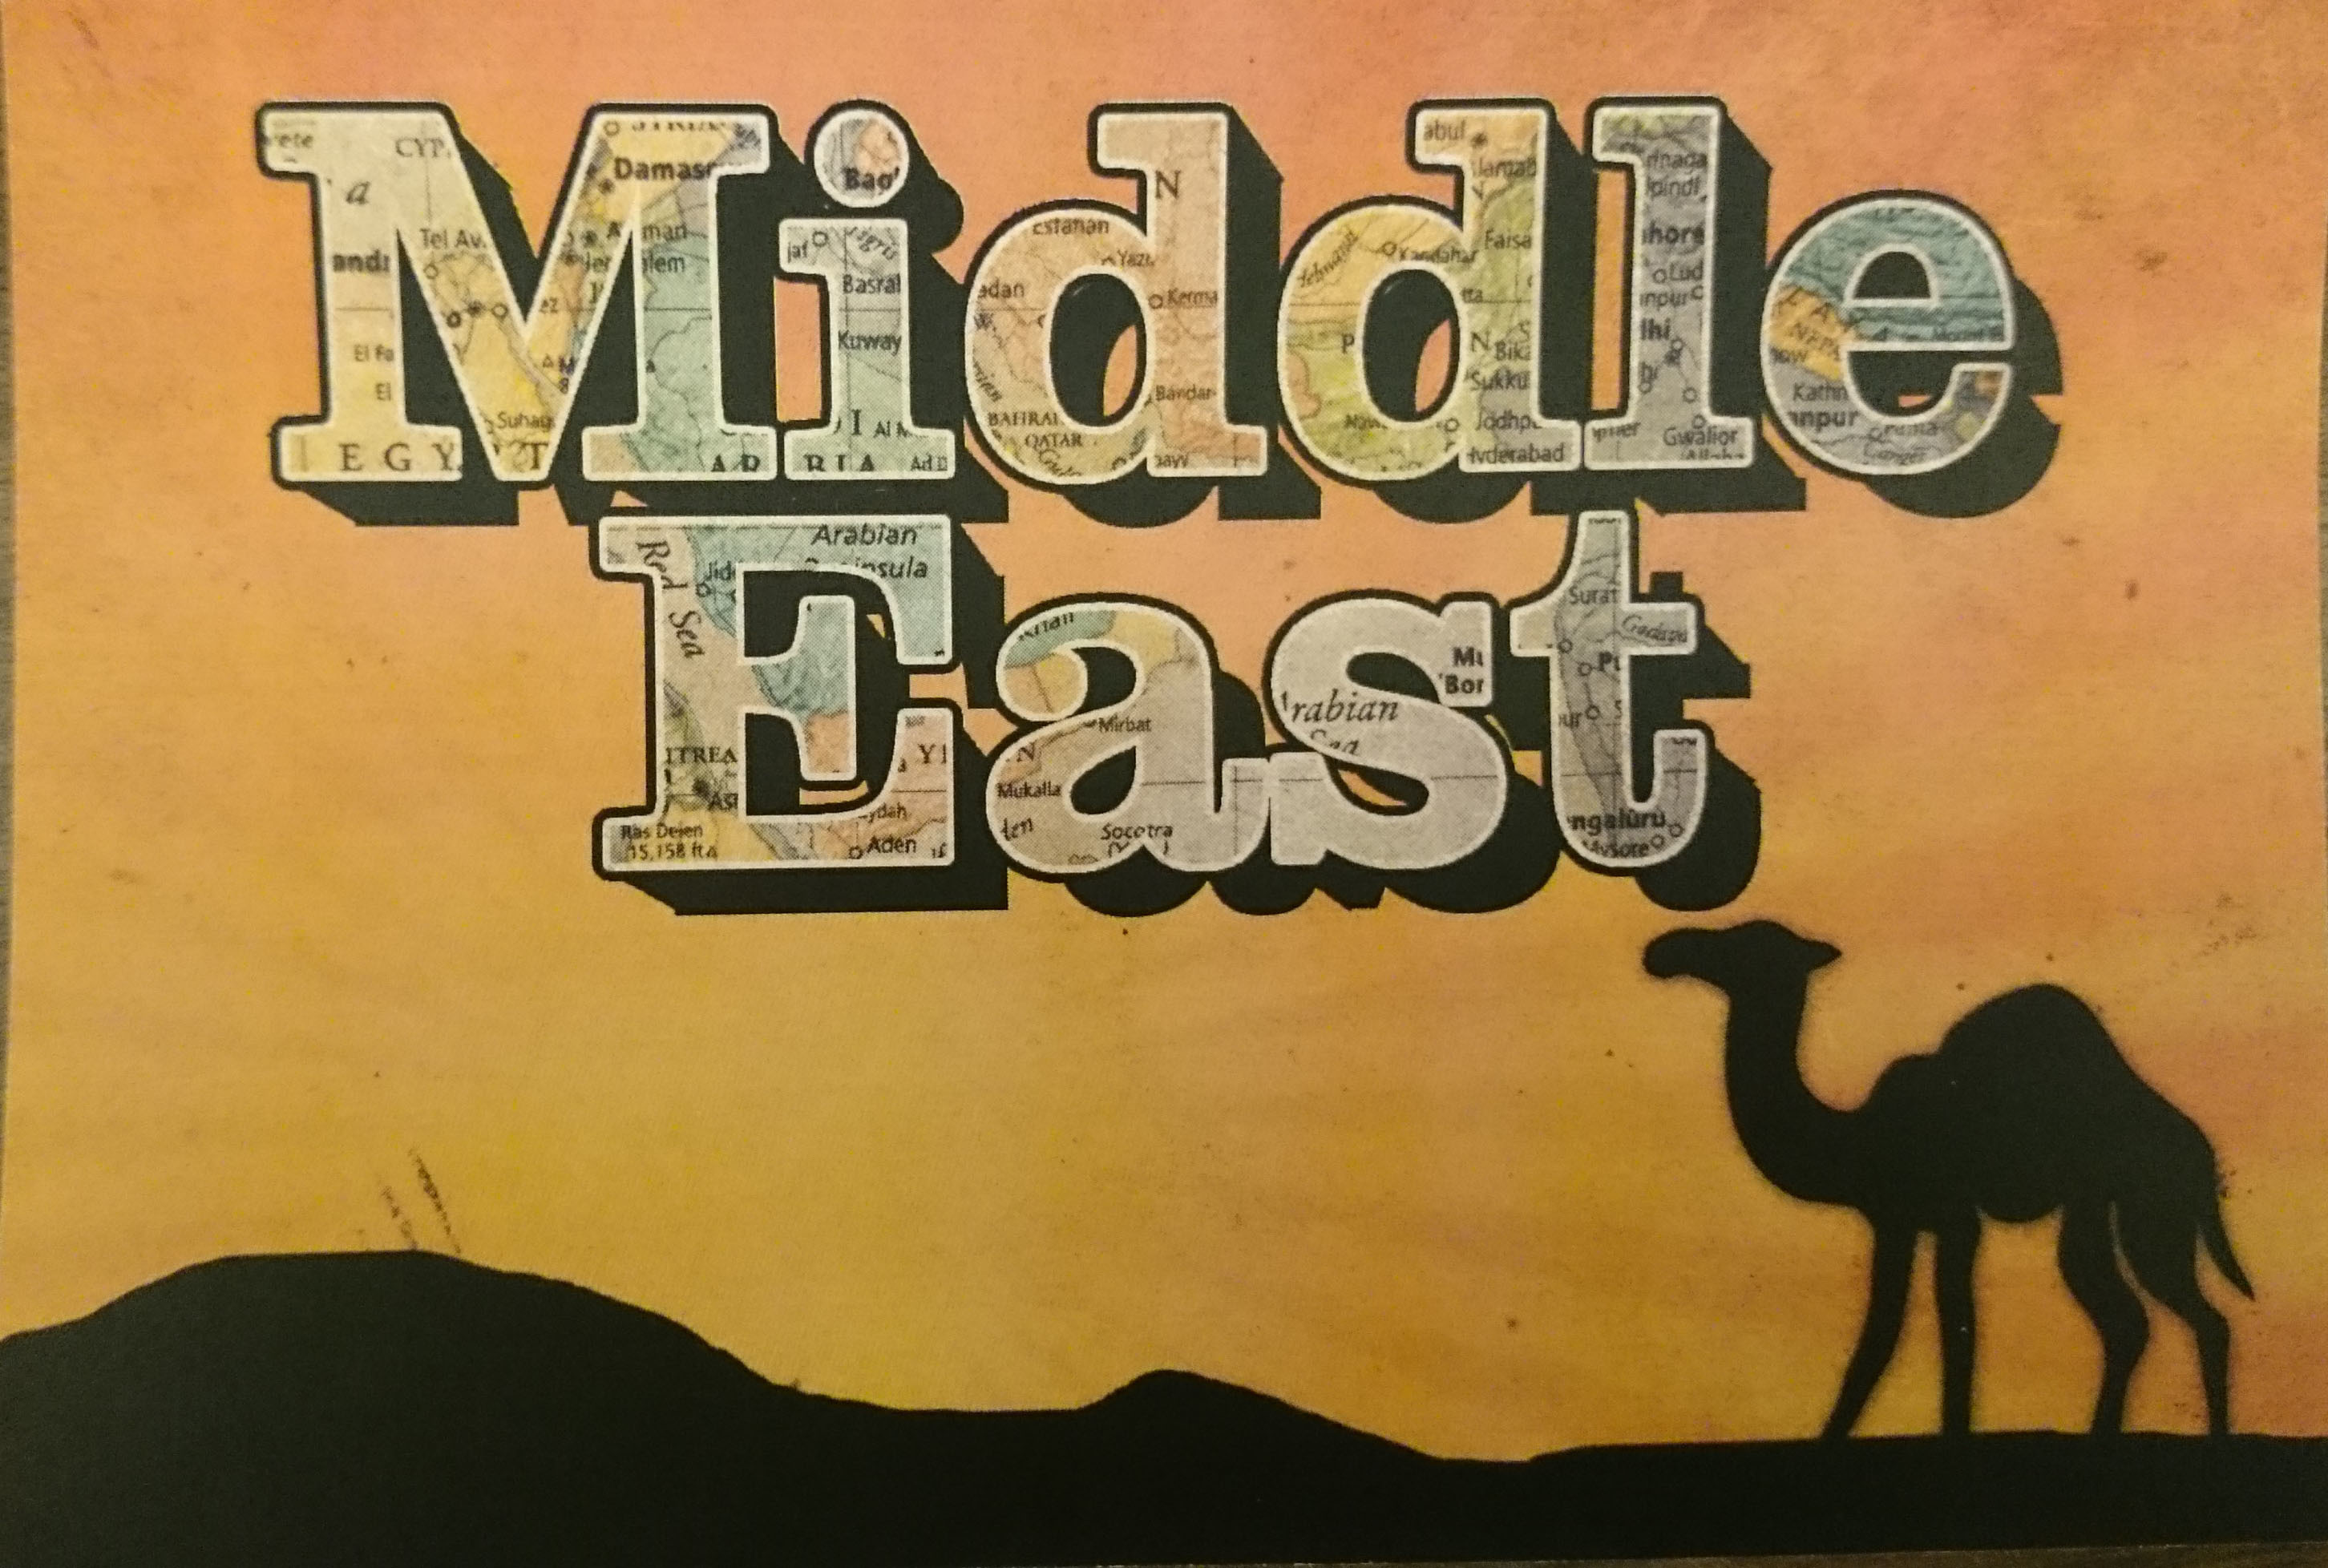 Greetings from Middle East postcard